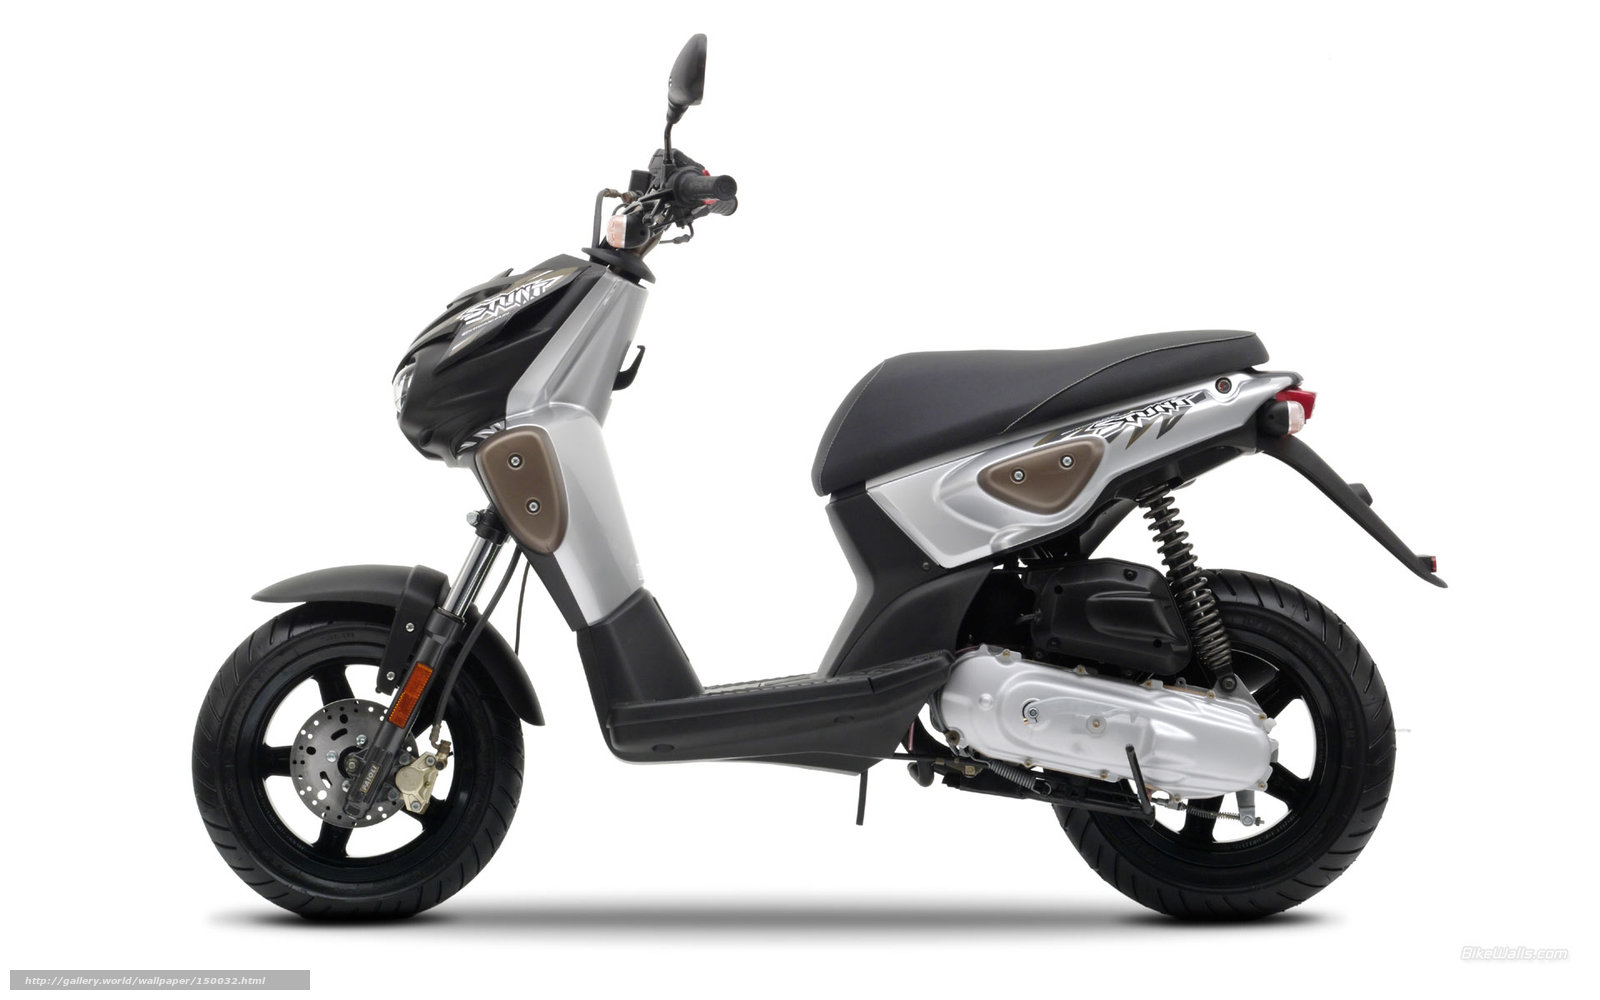 tlcharger fond d 39 ecran mbk scooter stunt nu stunt nue 2008 fonds d 39 ecran gratuits pour votre. Black Bedroom Furniture Sets. Home Design Ideas